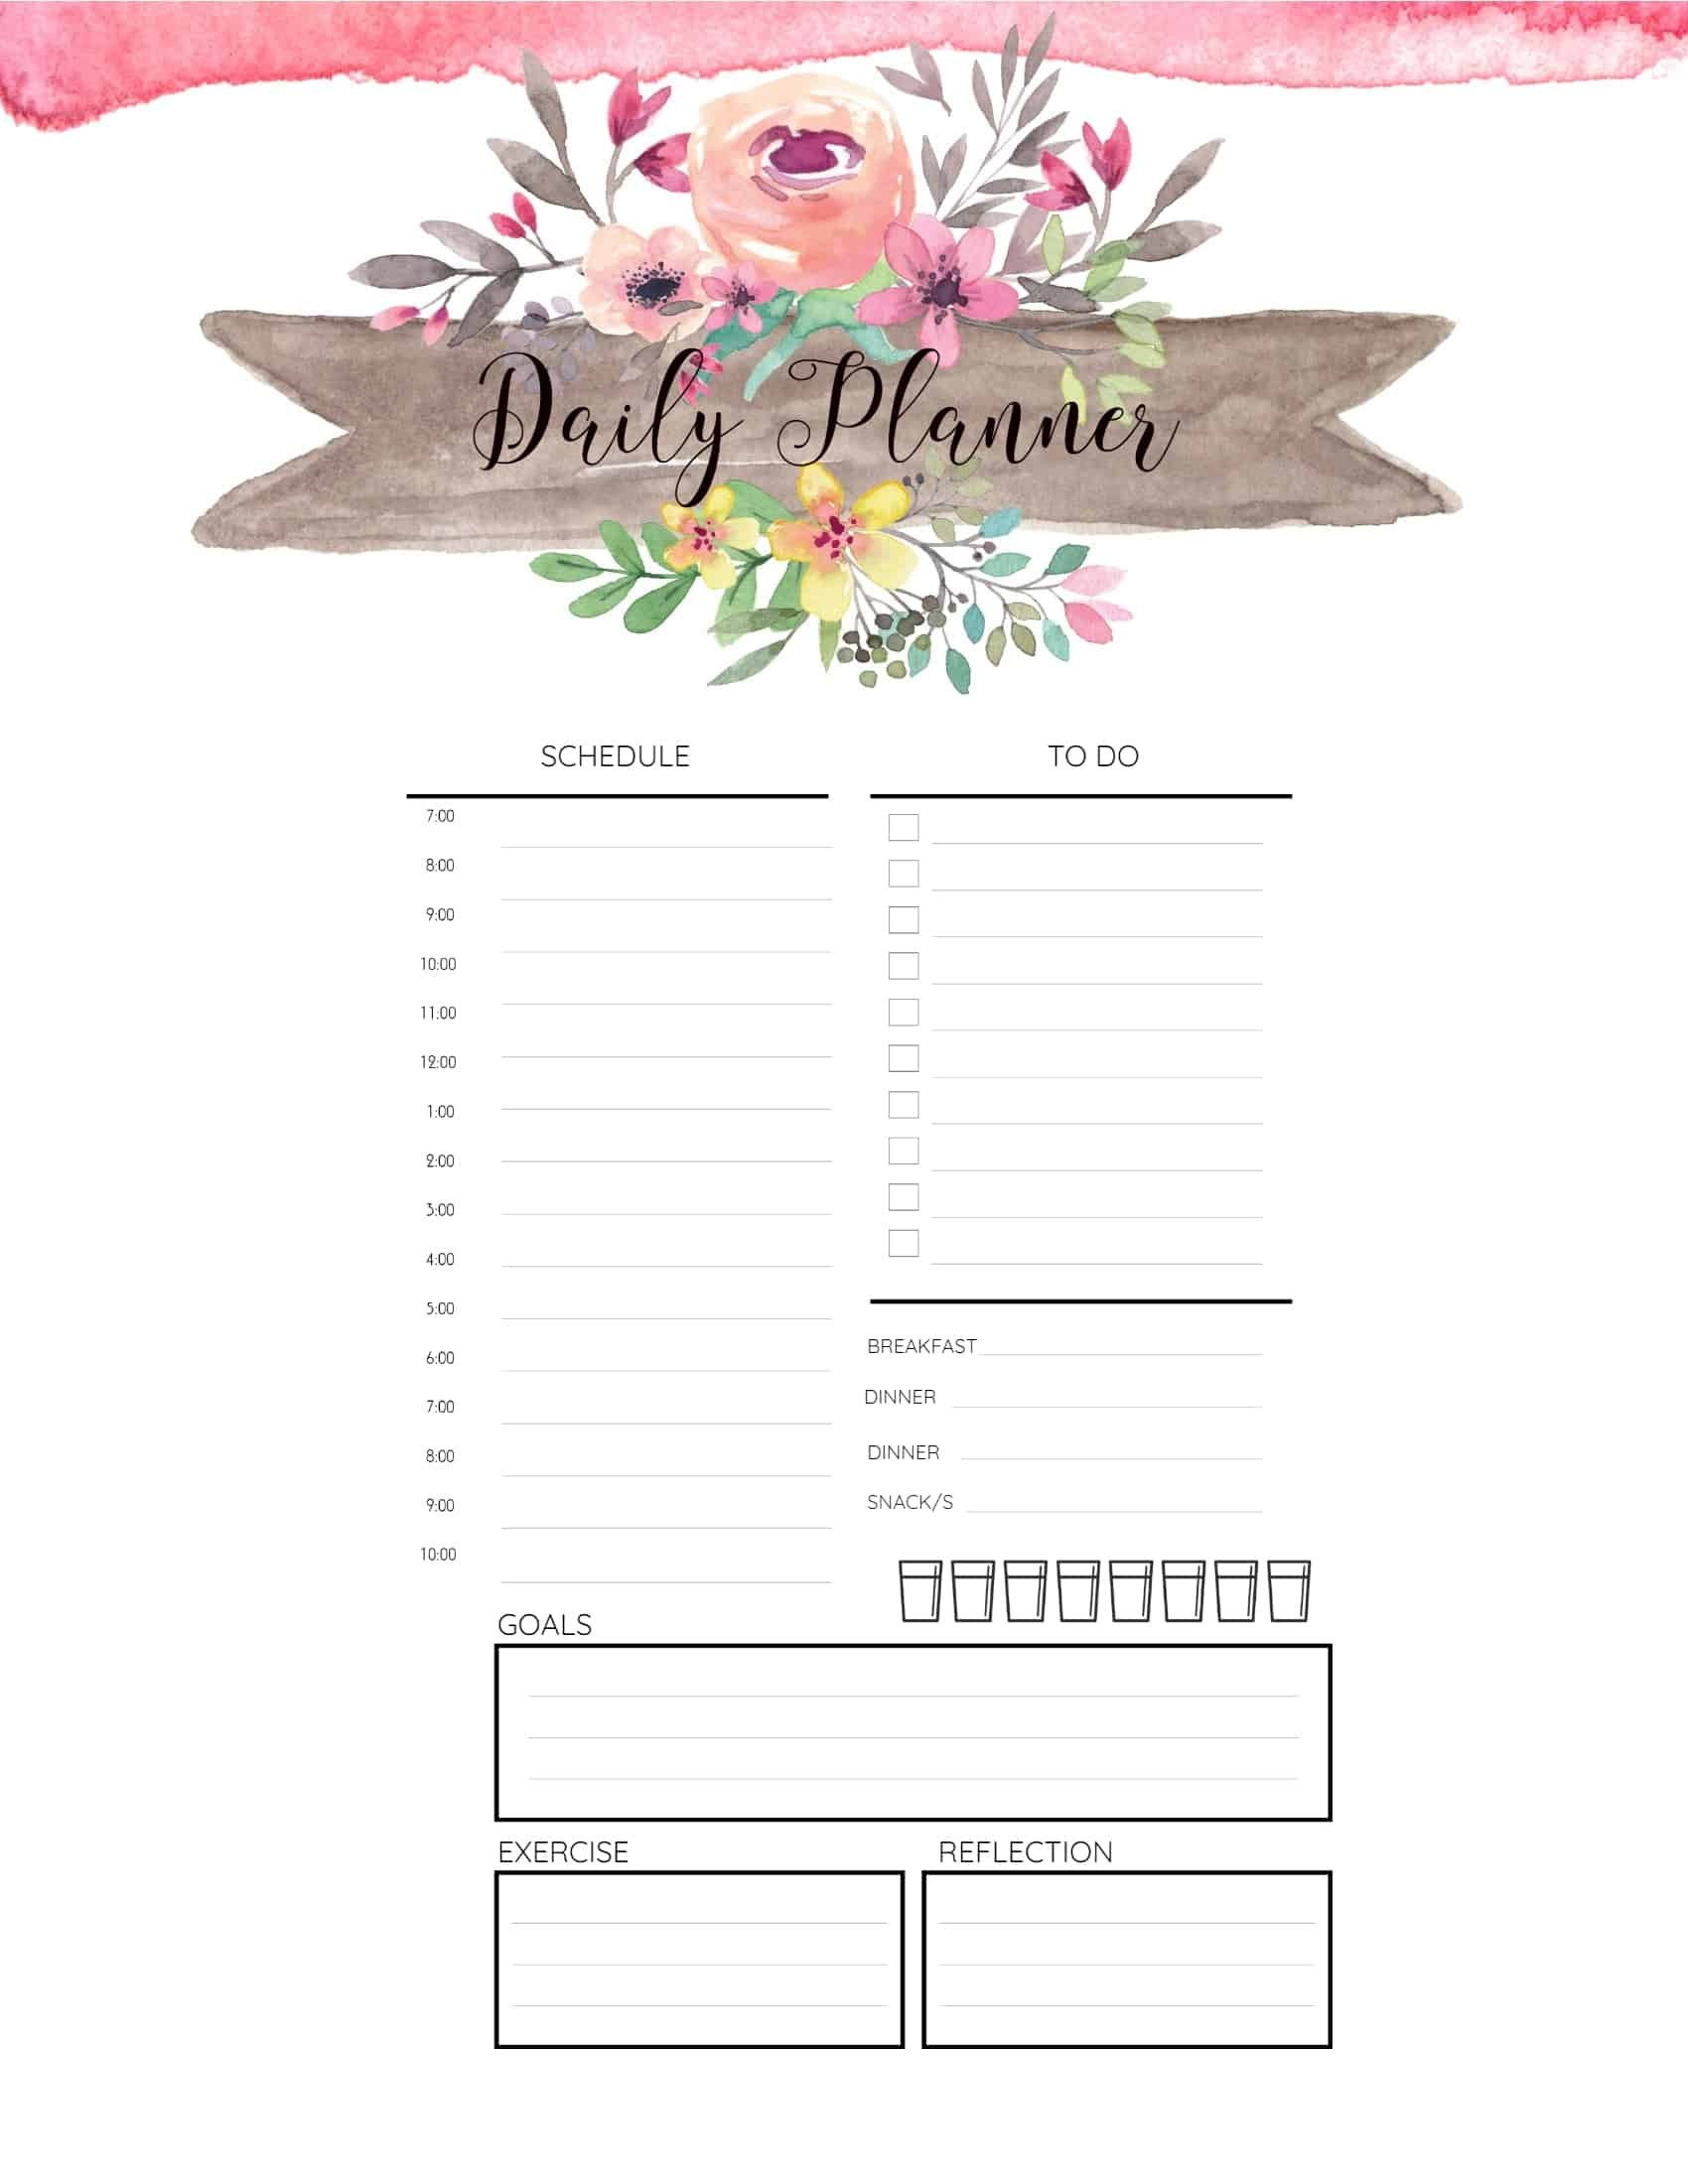 Free Printable Hourly Planner - Daily, Weekly Or Monthly Daily Hourly Schedule Print Out